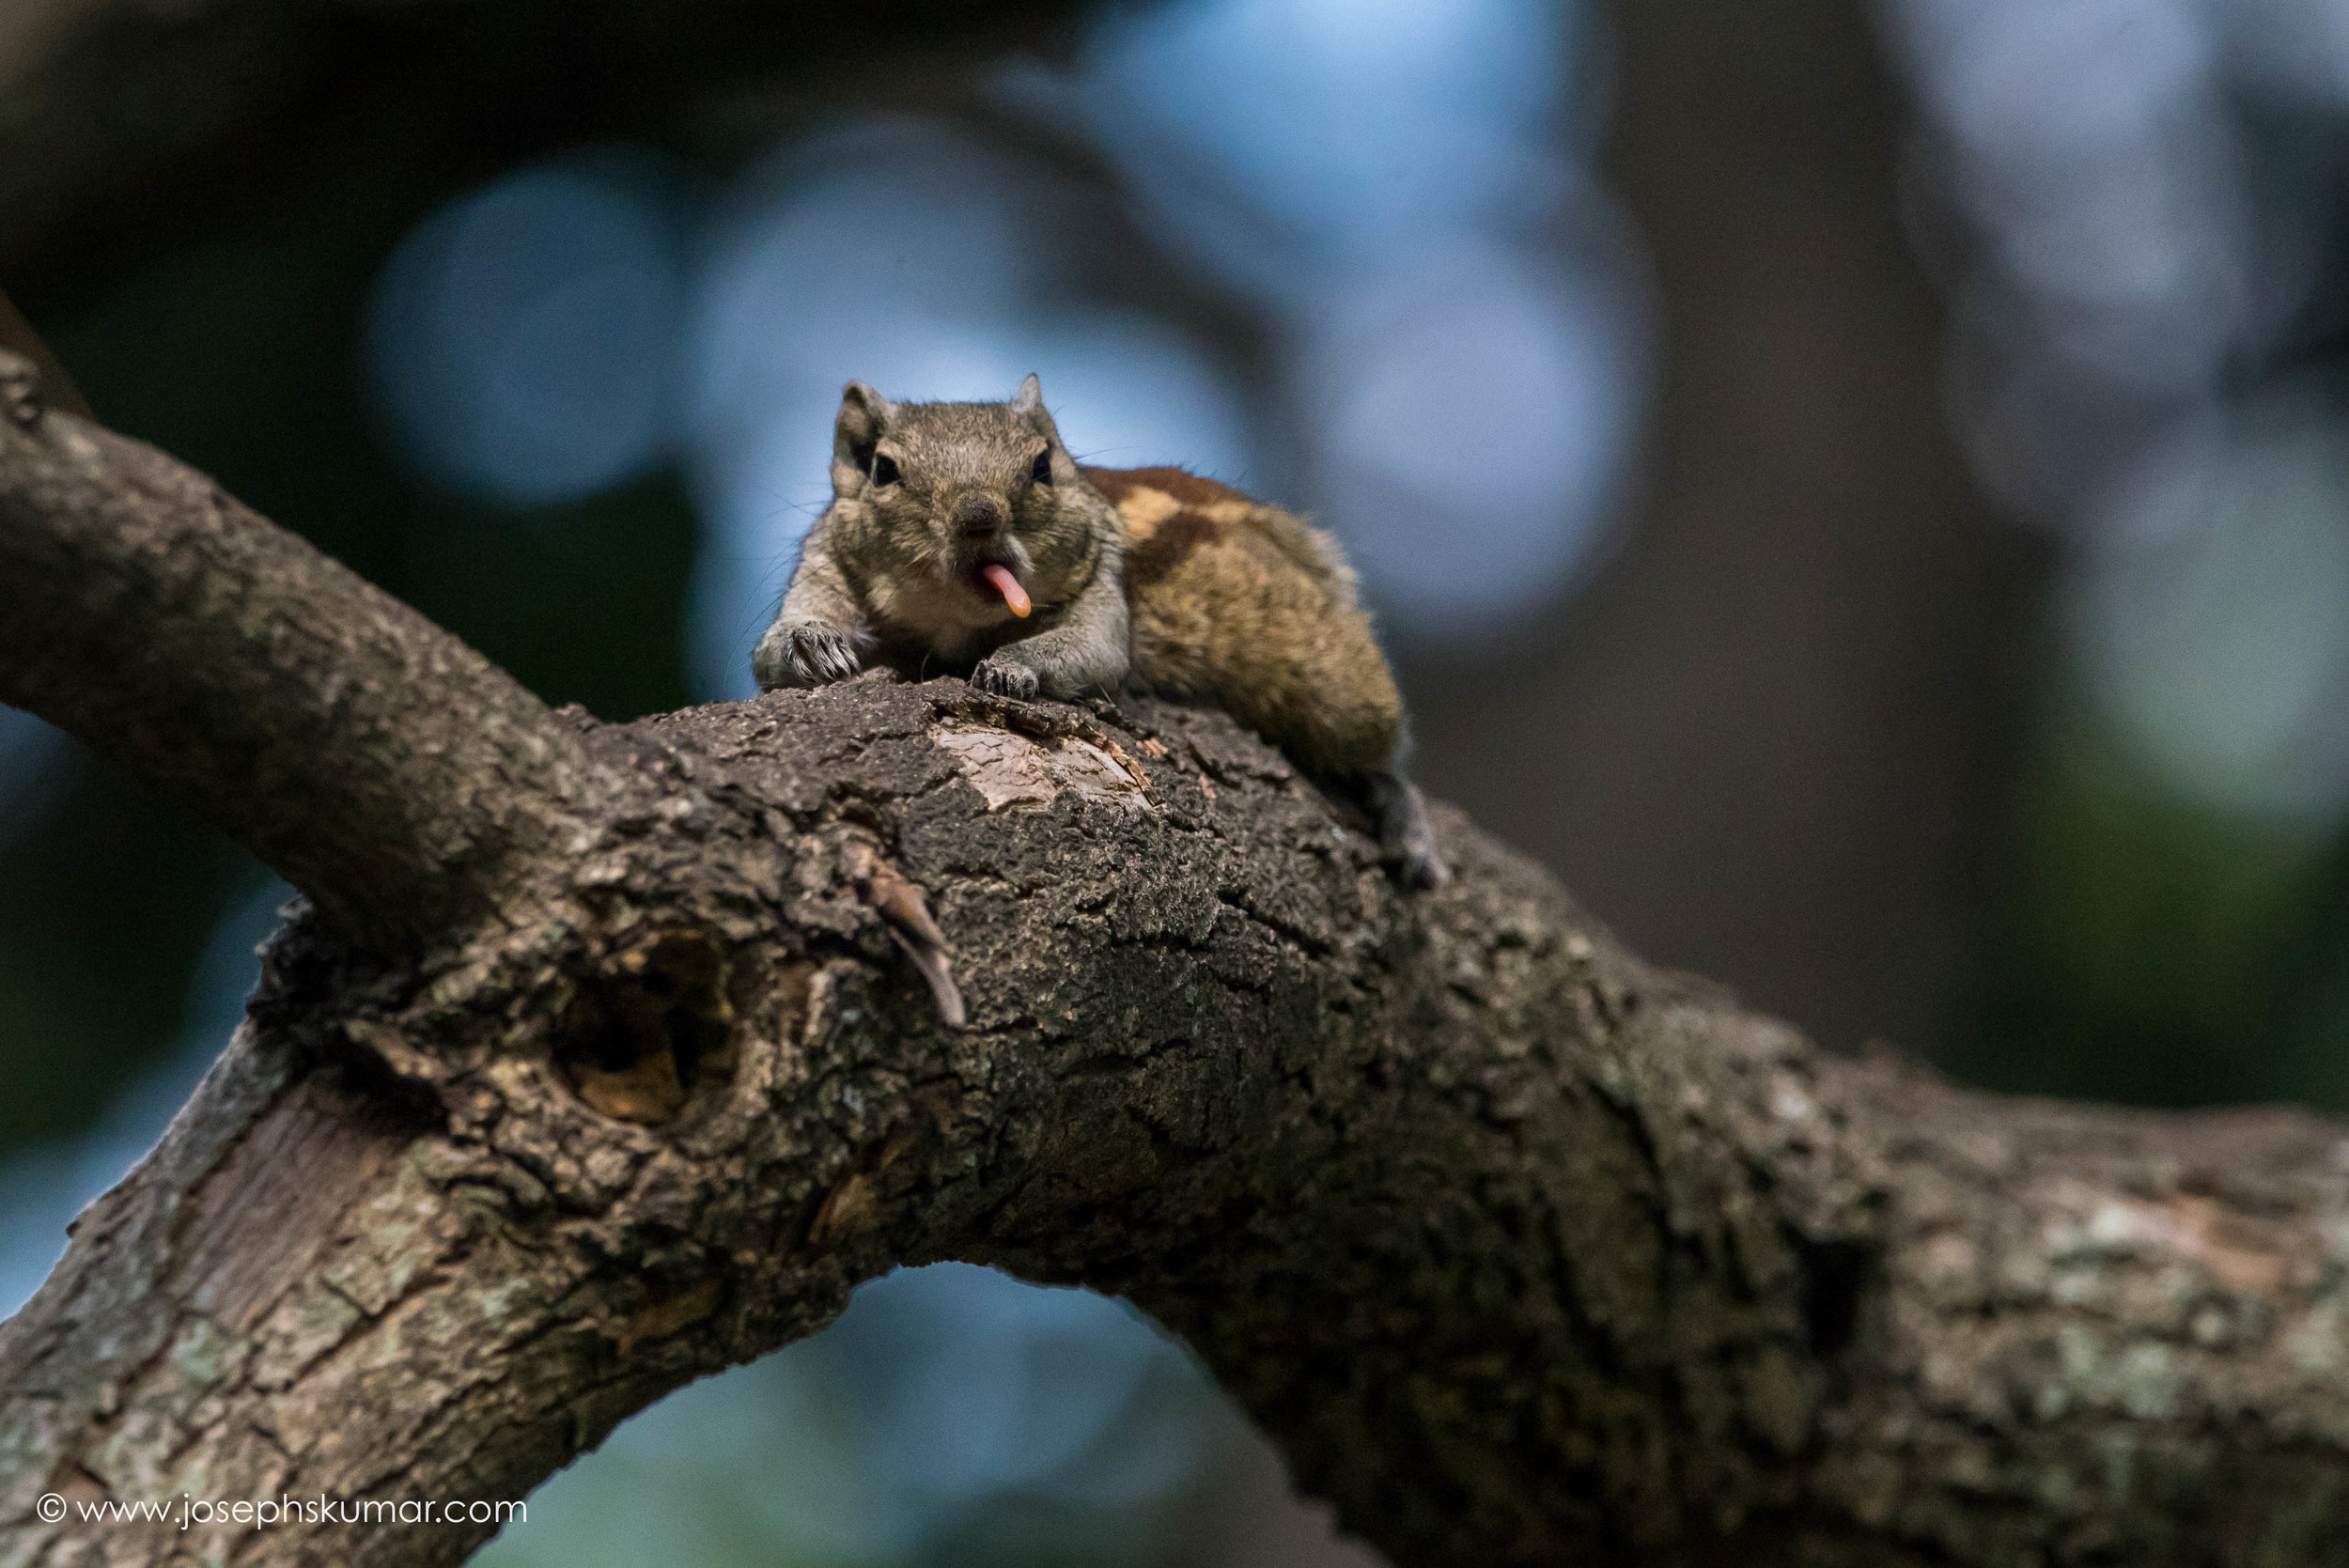 The Cheeky Squirrel